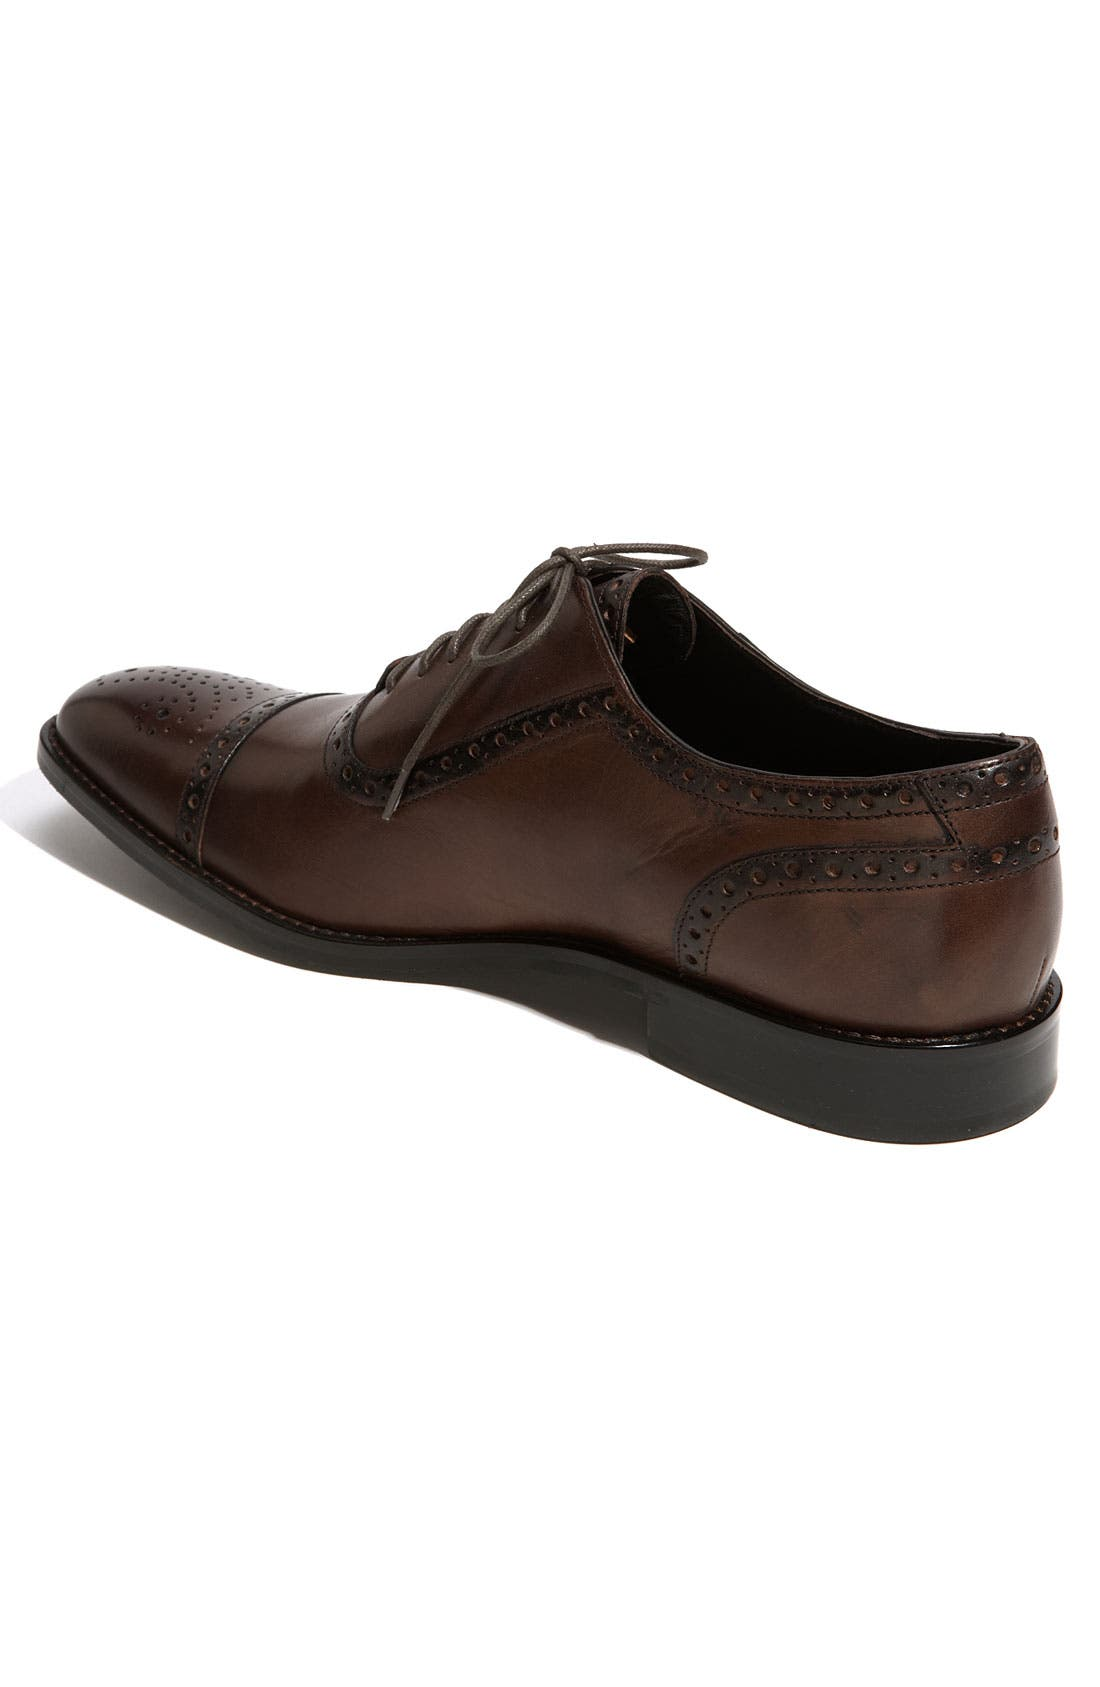 Alternate Image 2  - Calibrate 'Brandon' Cap Toe Oxford